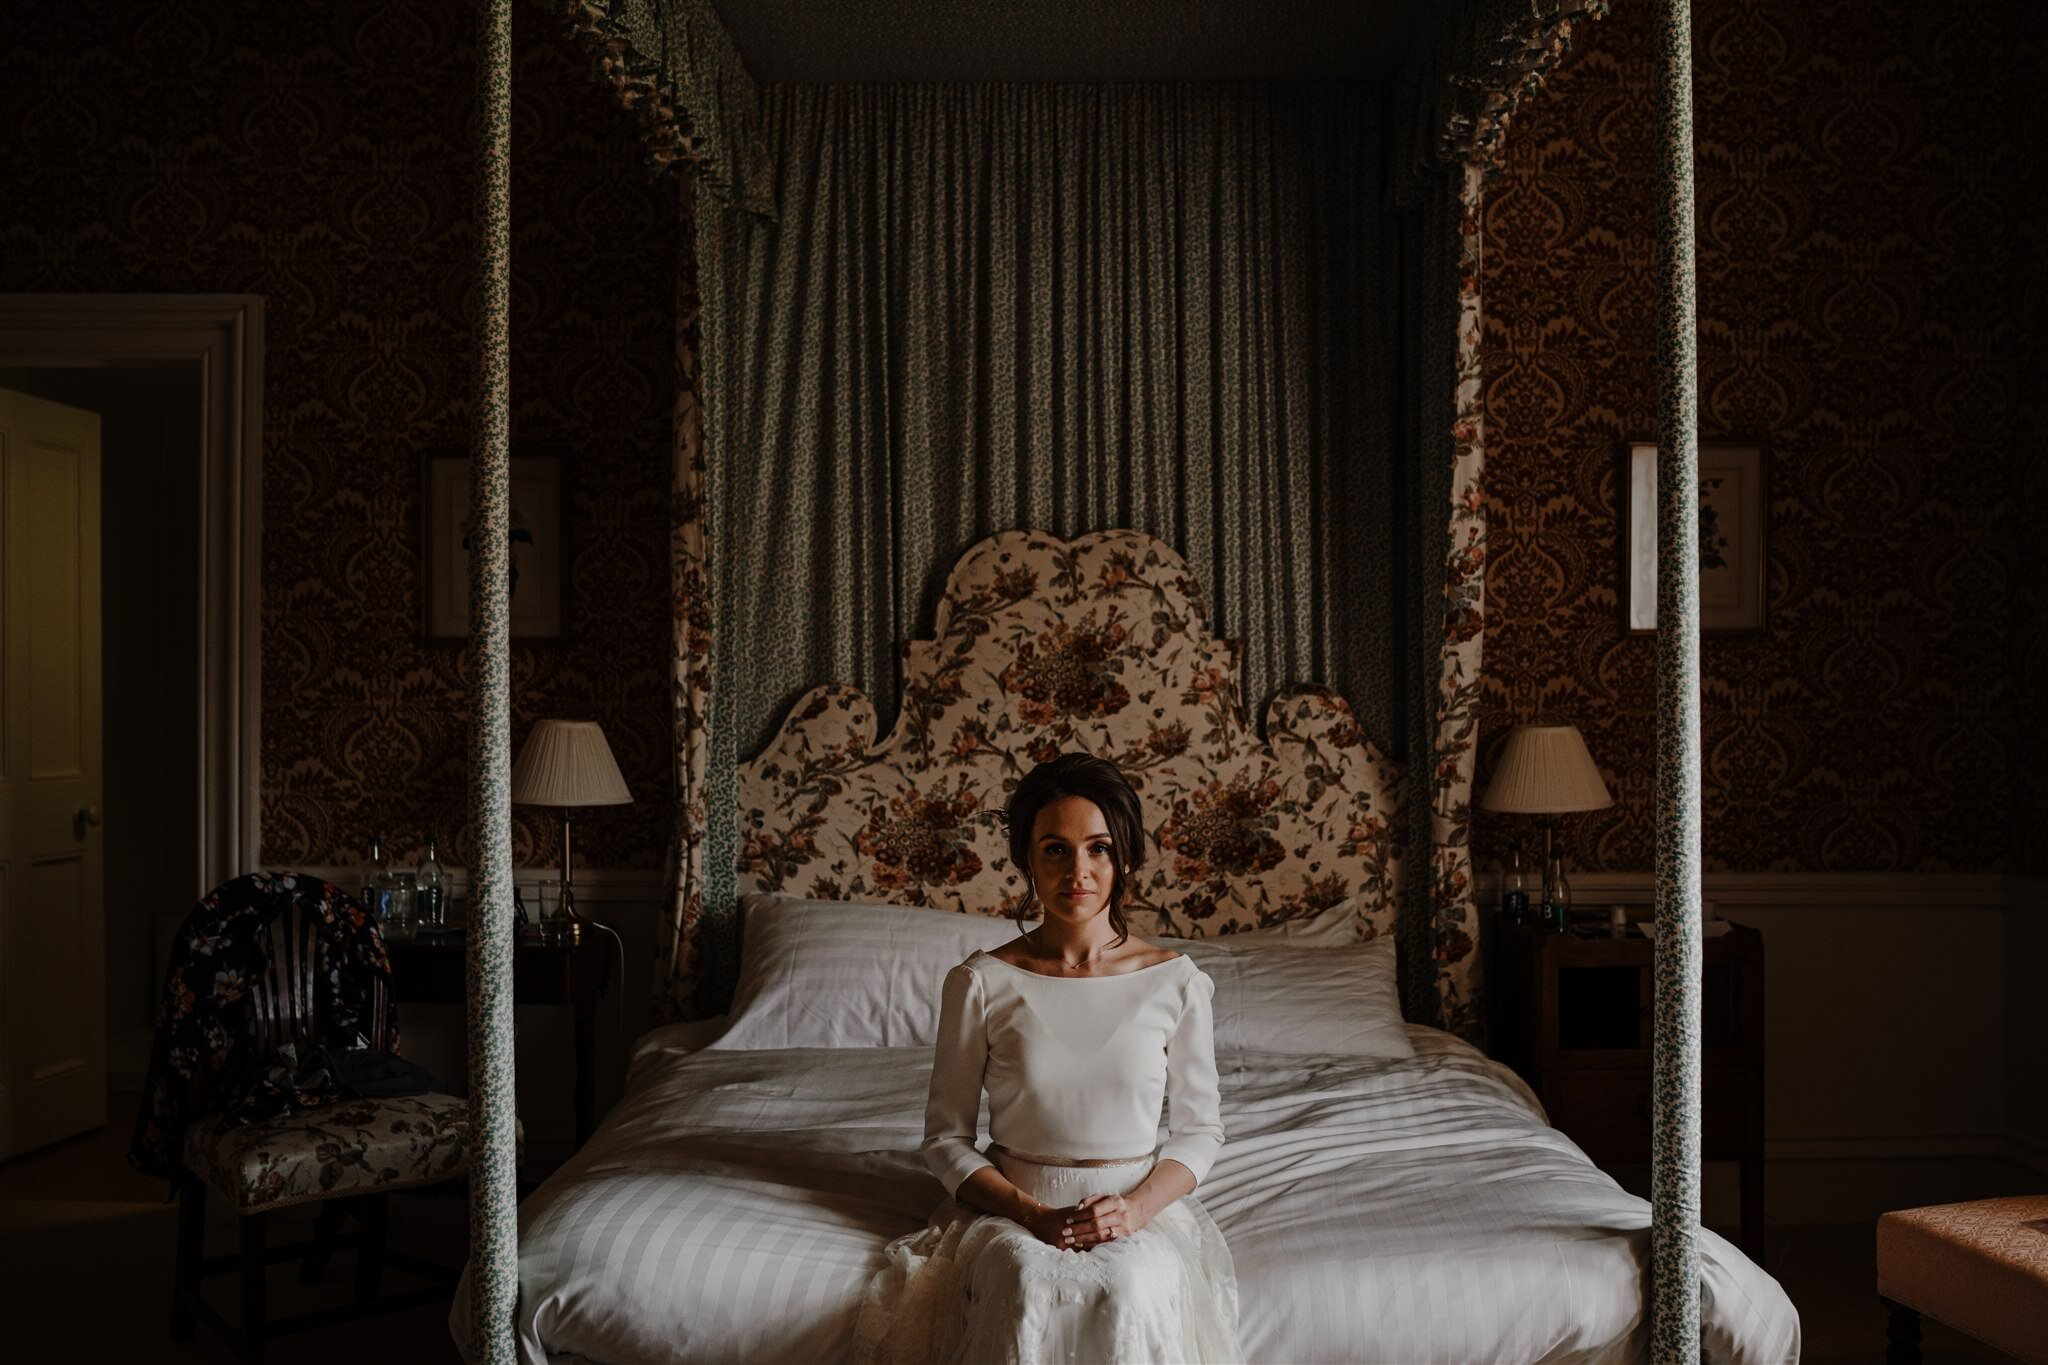 Wes Anderson style bride portrait Charlie bread wedding dress from castle enniskillen